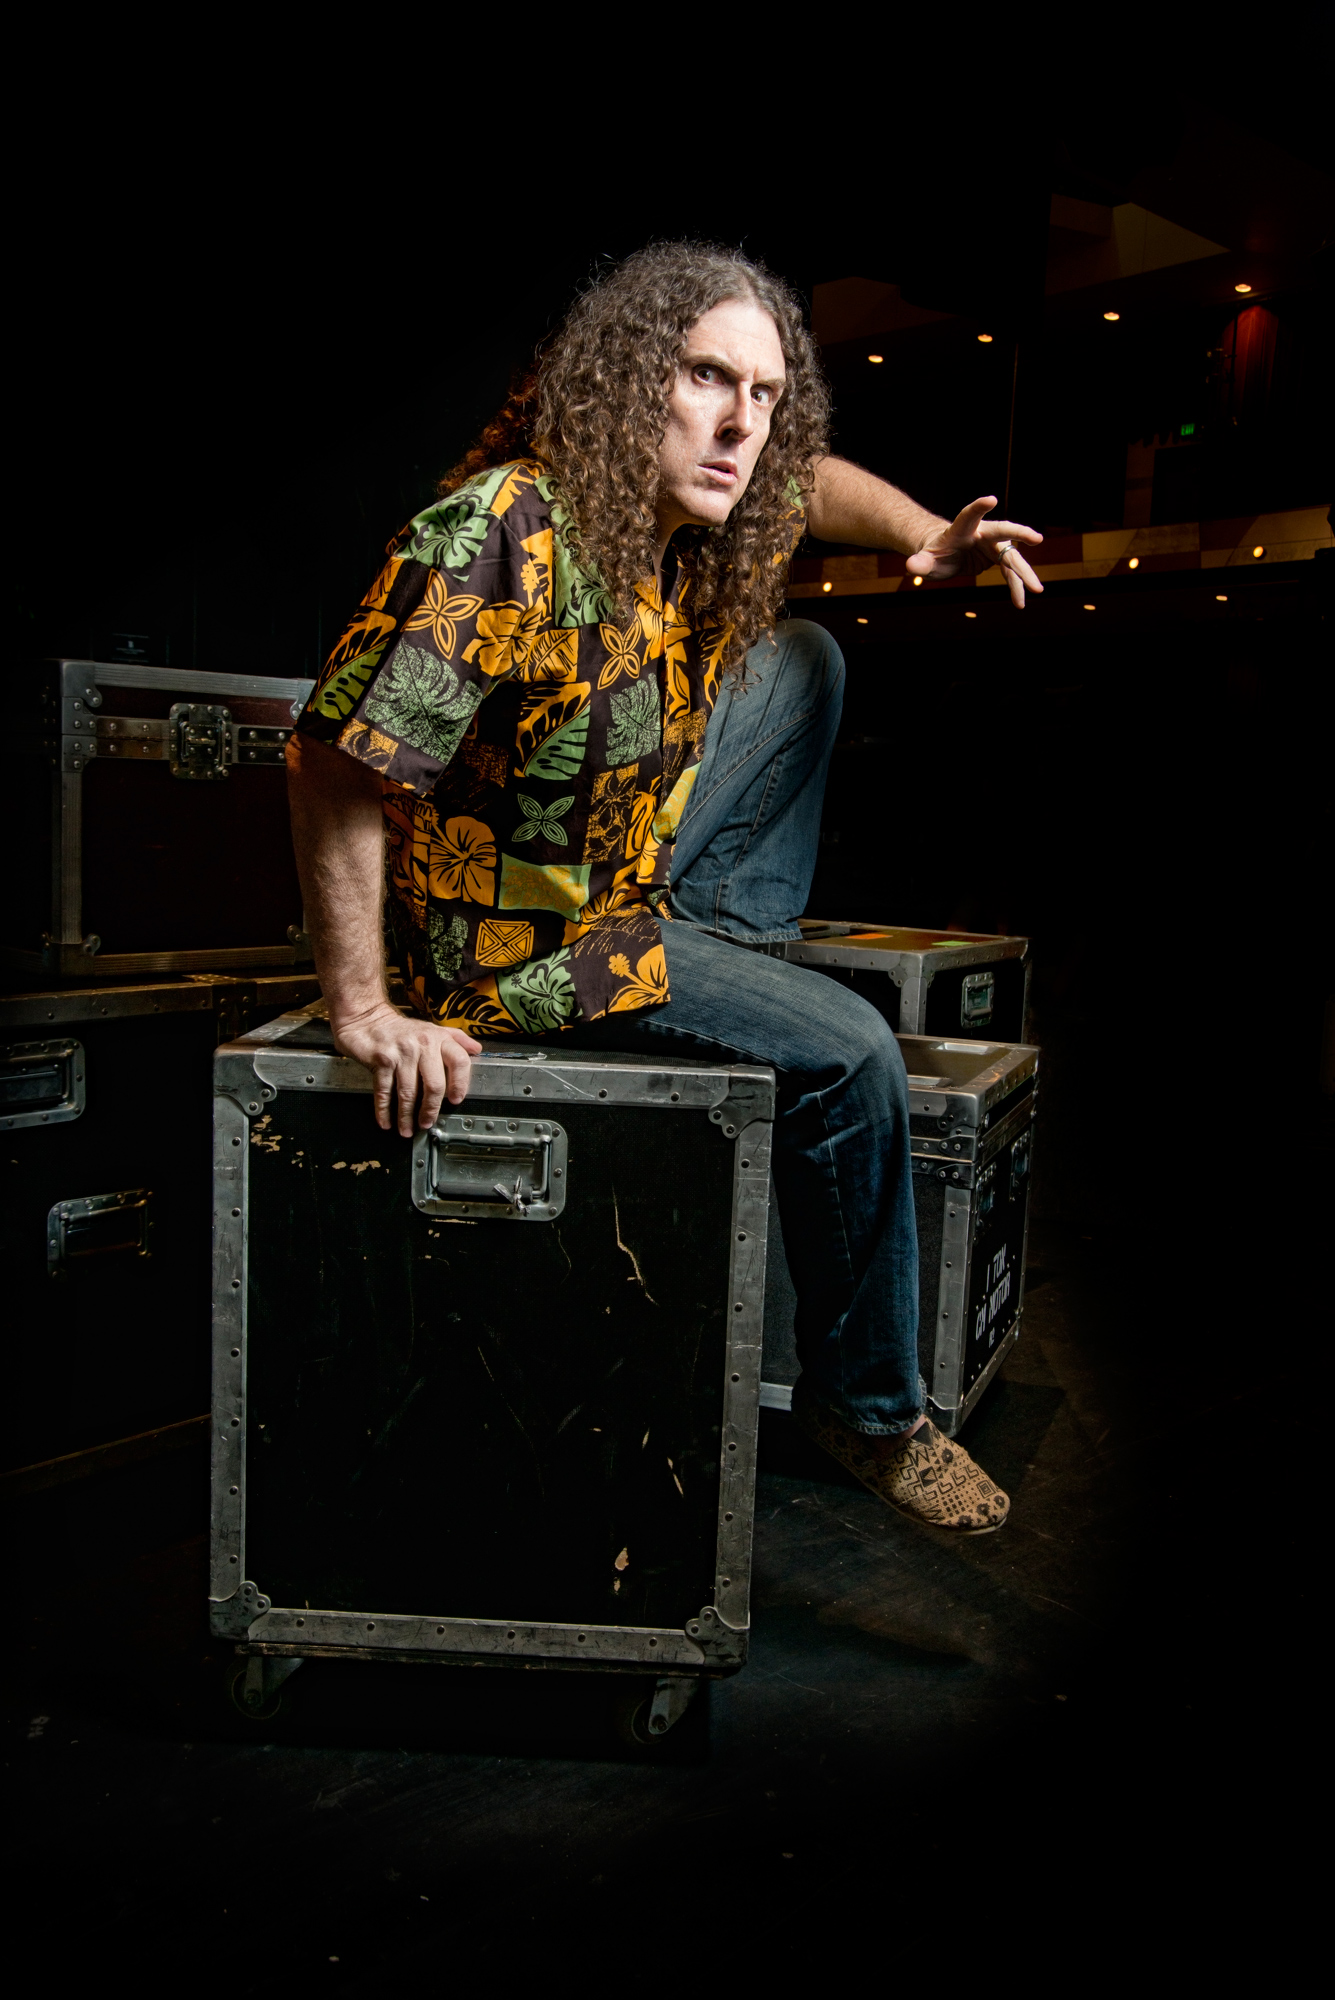 The 58-year old son of father  Nick Louis Yankovic and mother  Mary Elizabeth Yankovic, 183 cm tall Weird Al Yankovic in 2018 photo